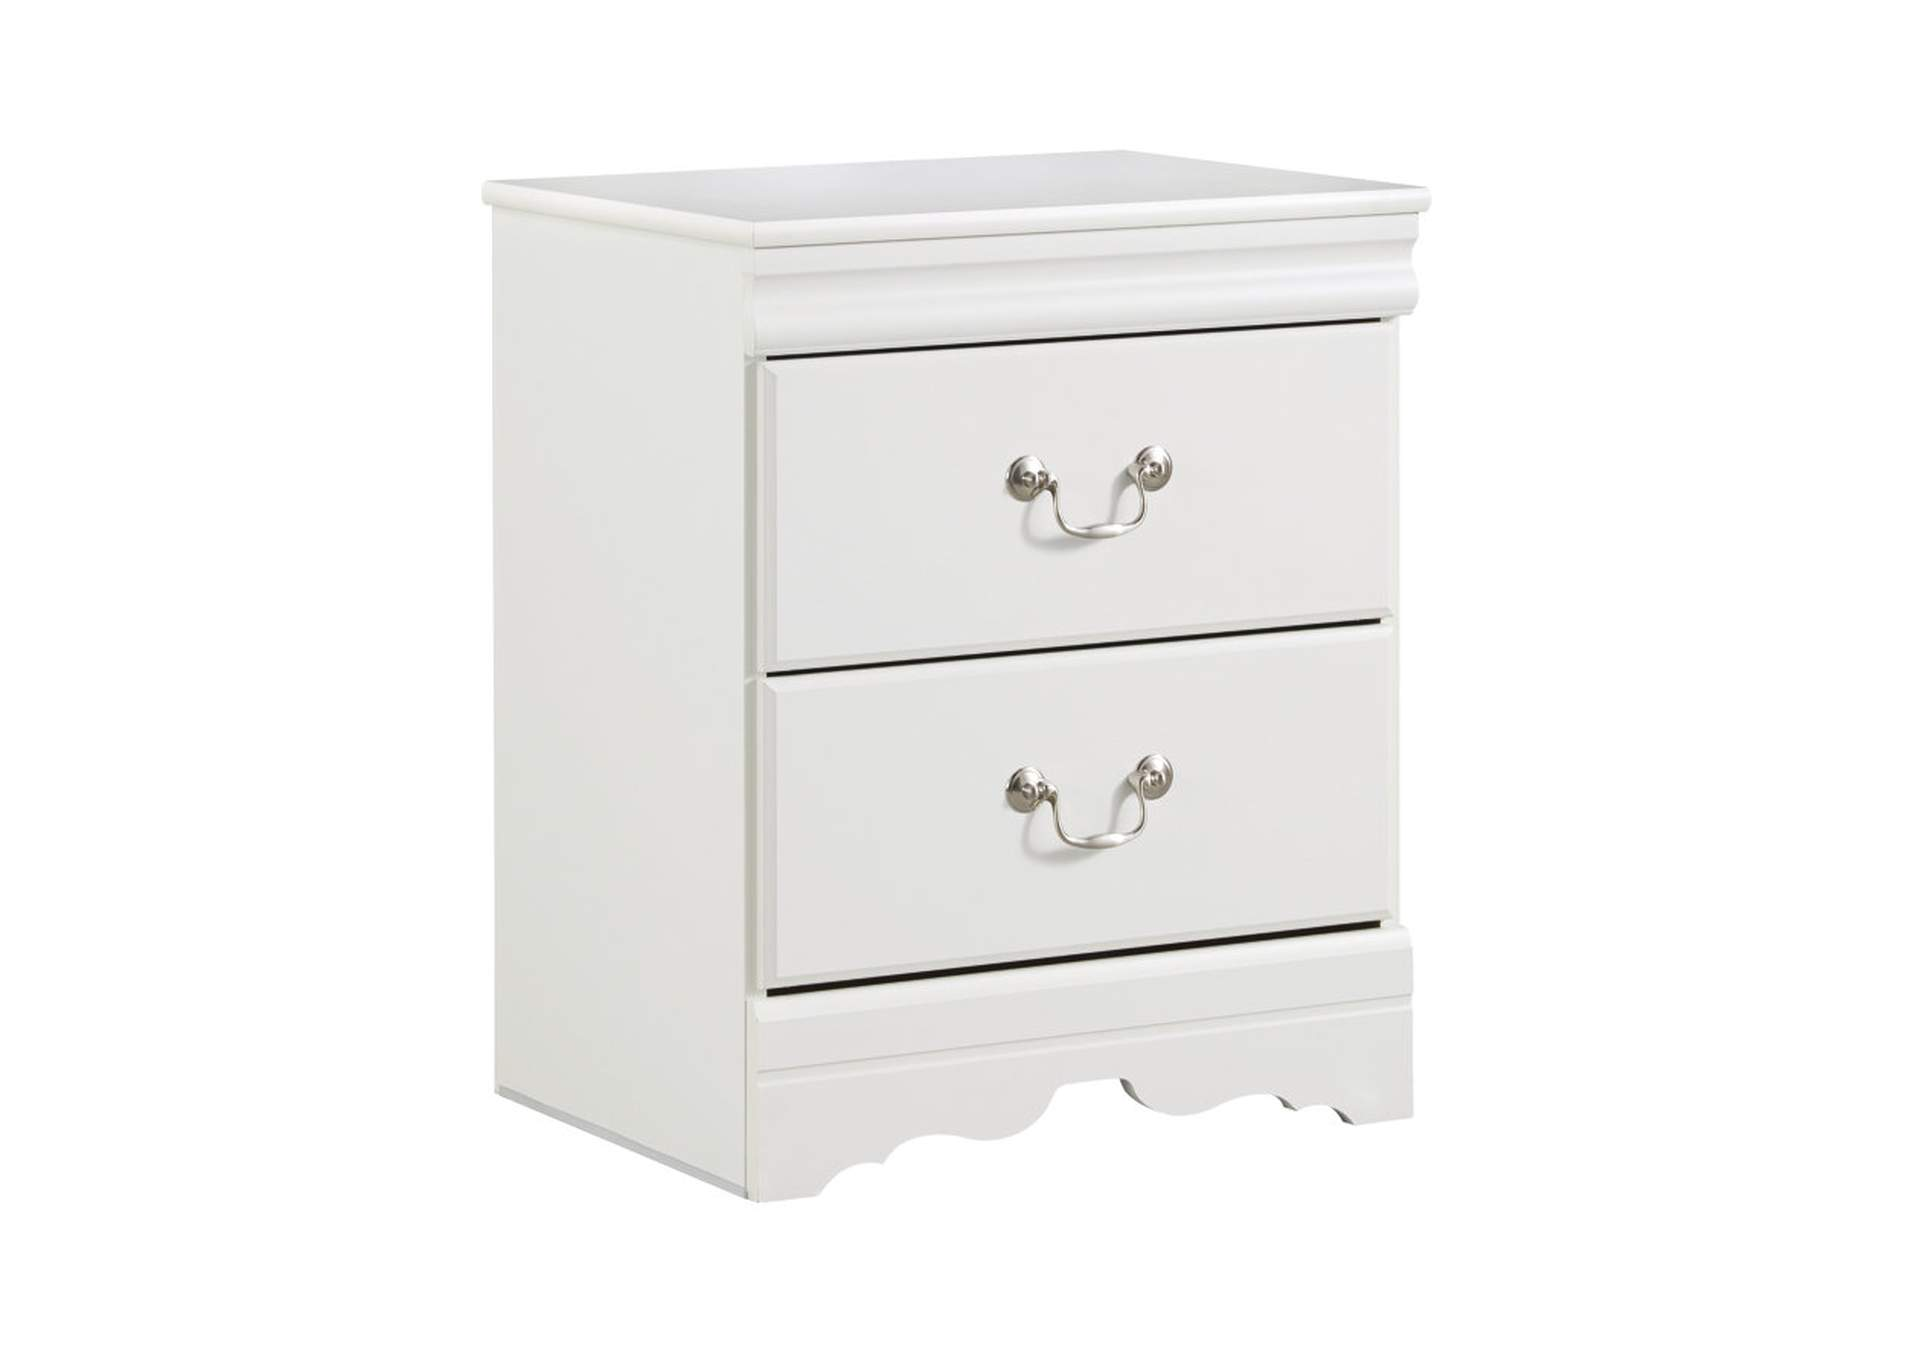 Anarasia White Two Drawer Nightstand,Signature Design By Ashley